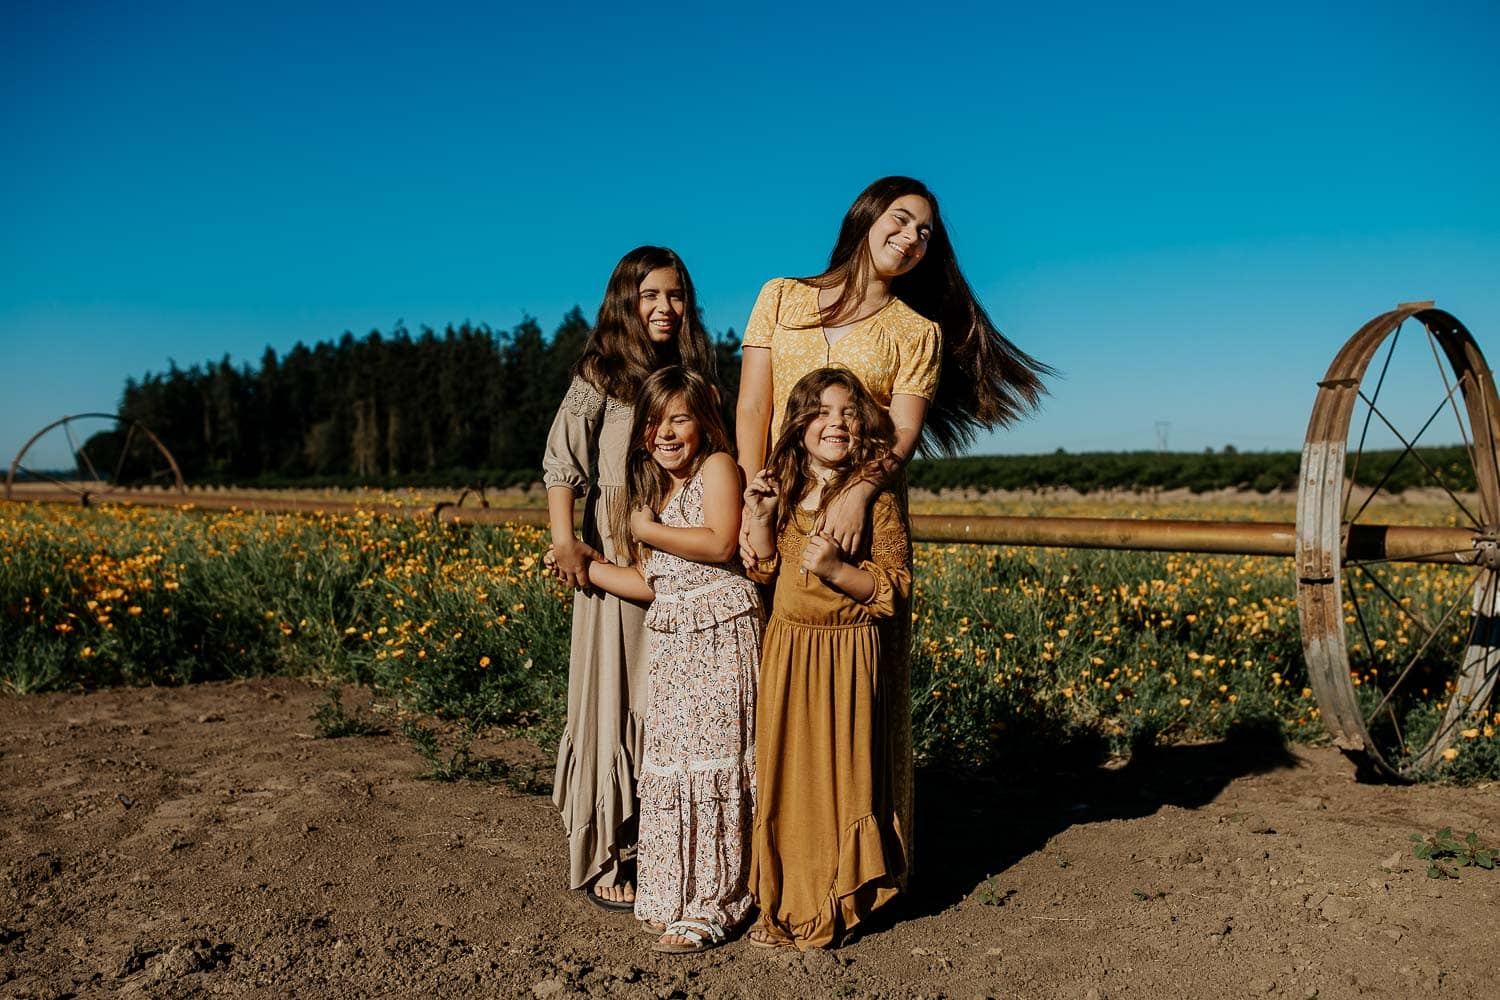 Sisters in a field of poppies - What to wear for photos